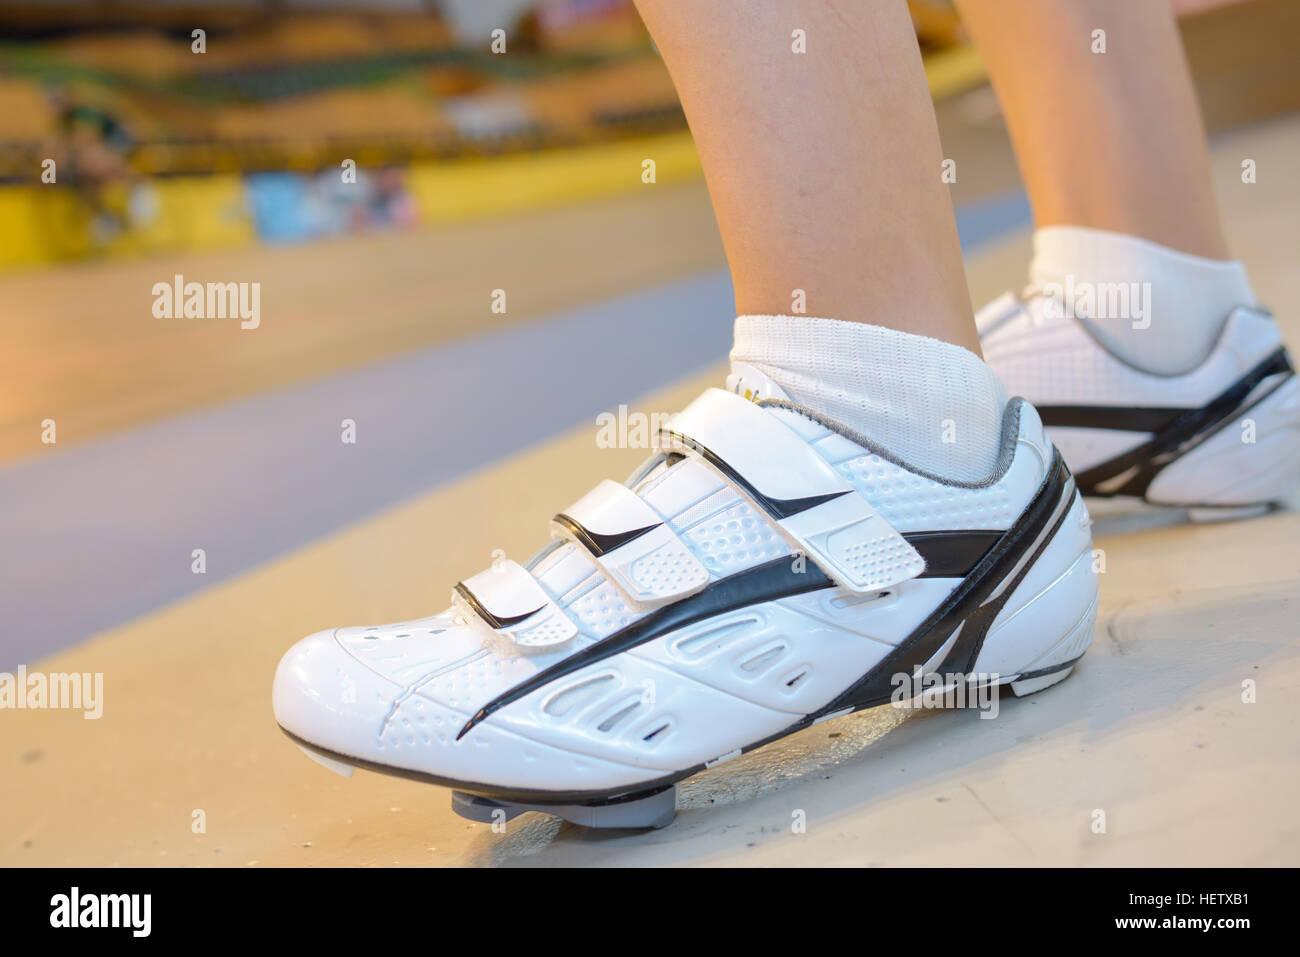 Closeup of cycling shoes - Stock Image